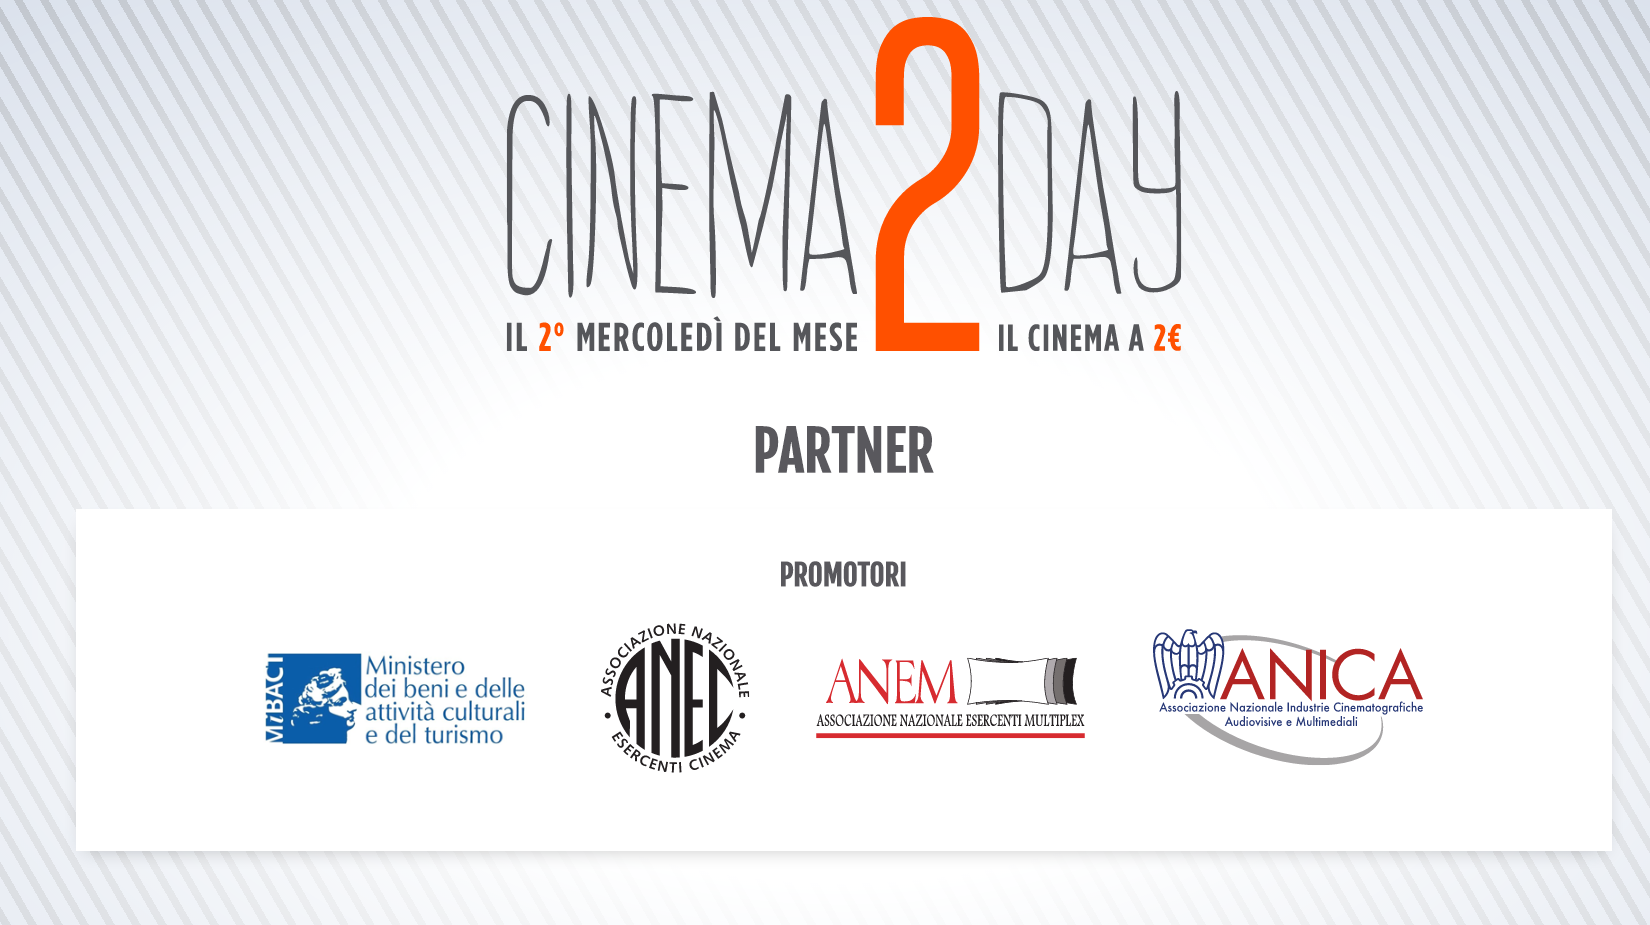 Mibact, la campagna web di Cinema2day